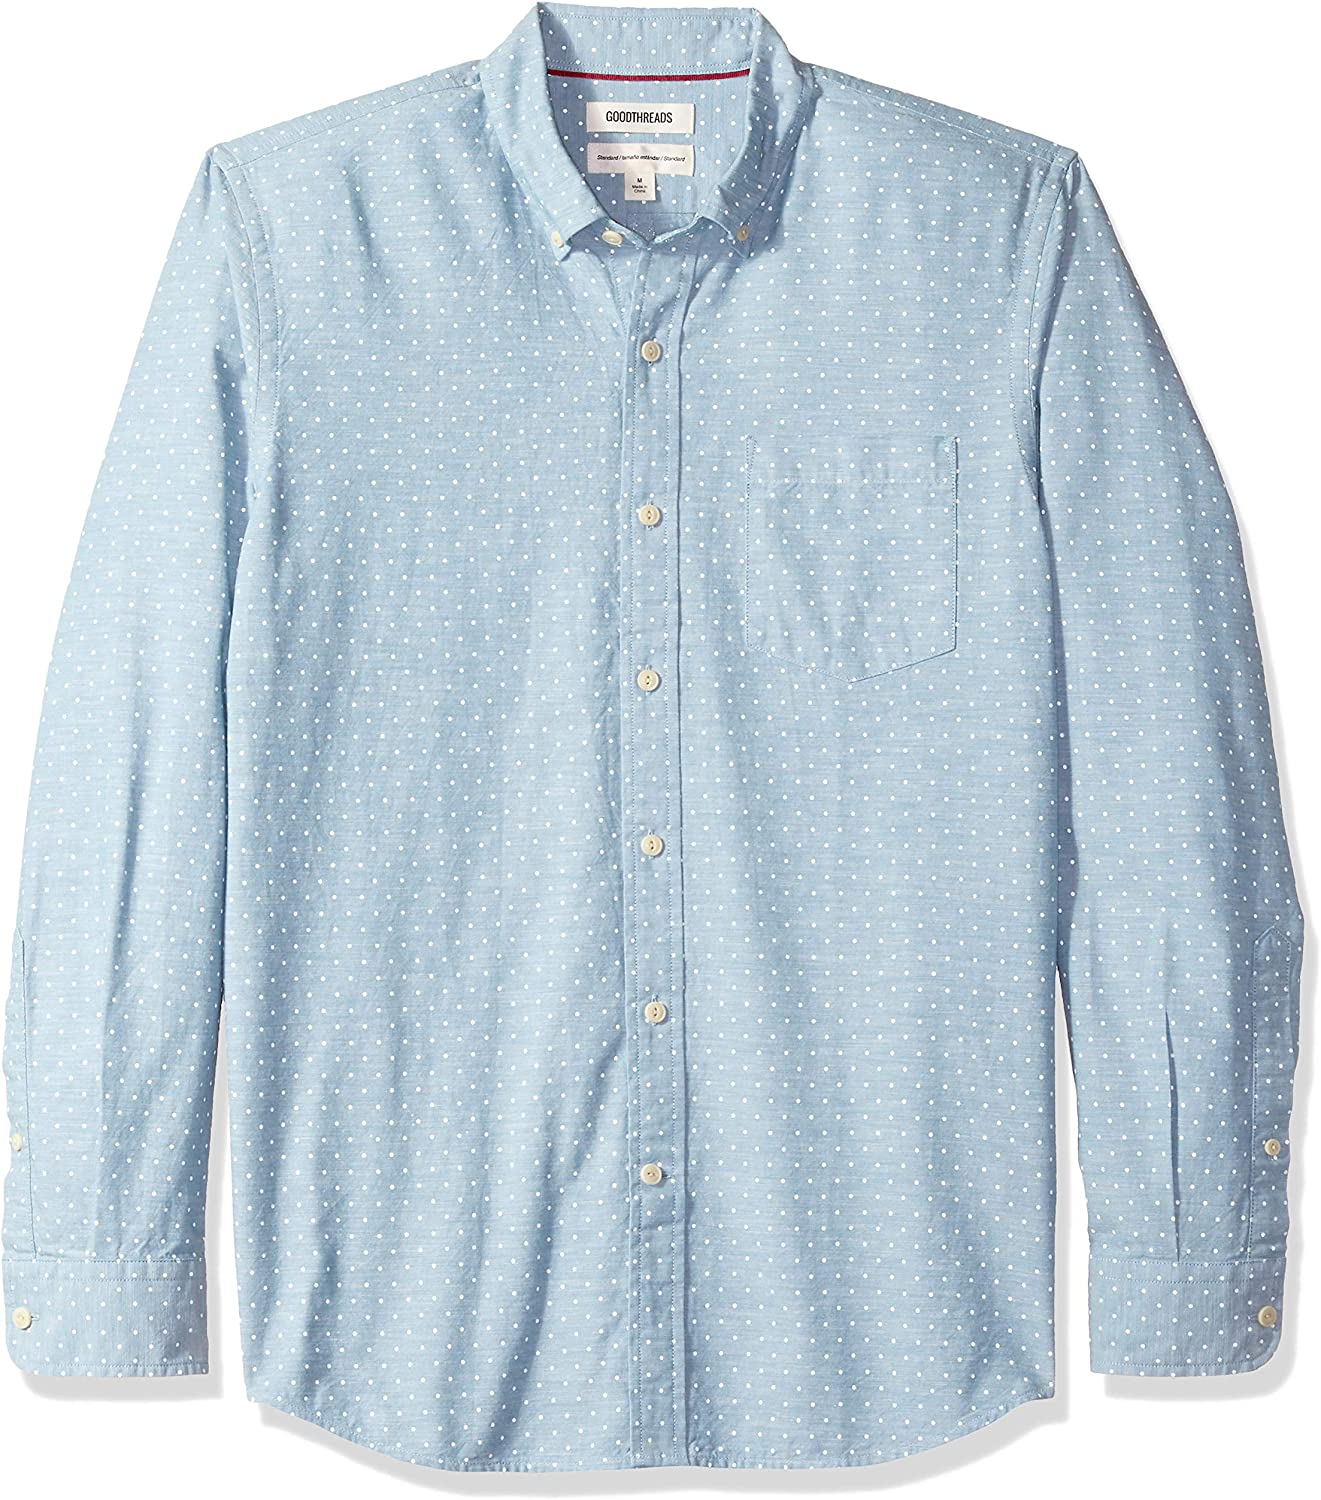 Brand Goodthreads Mens Slim-Fit Long-Sleeve Polka Dot Homespun Chambray Shirt